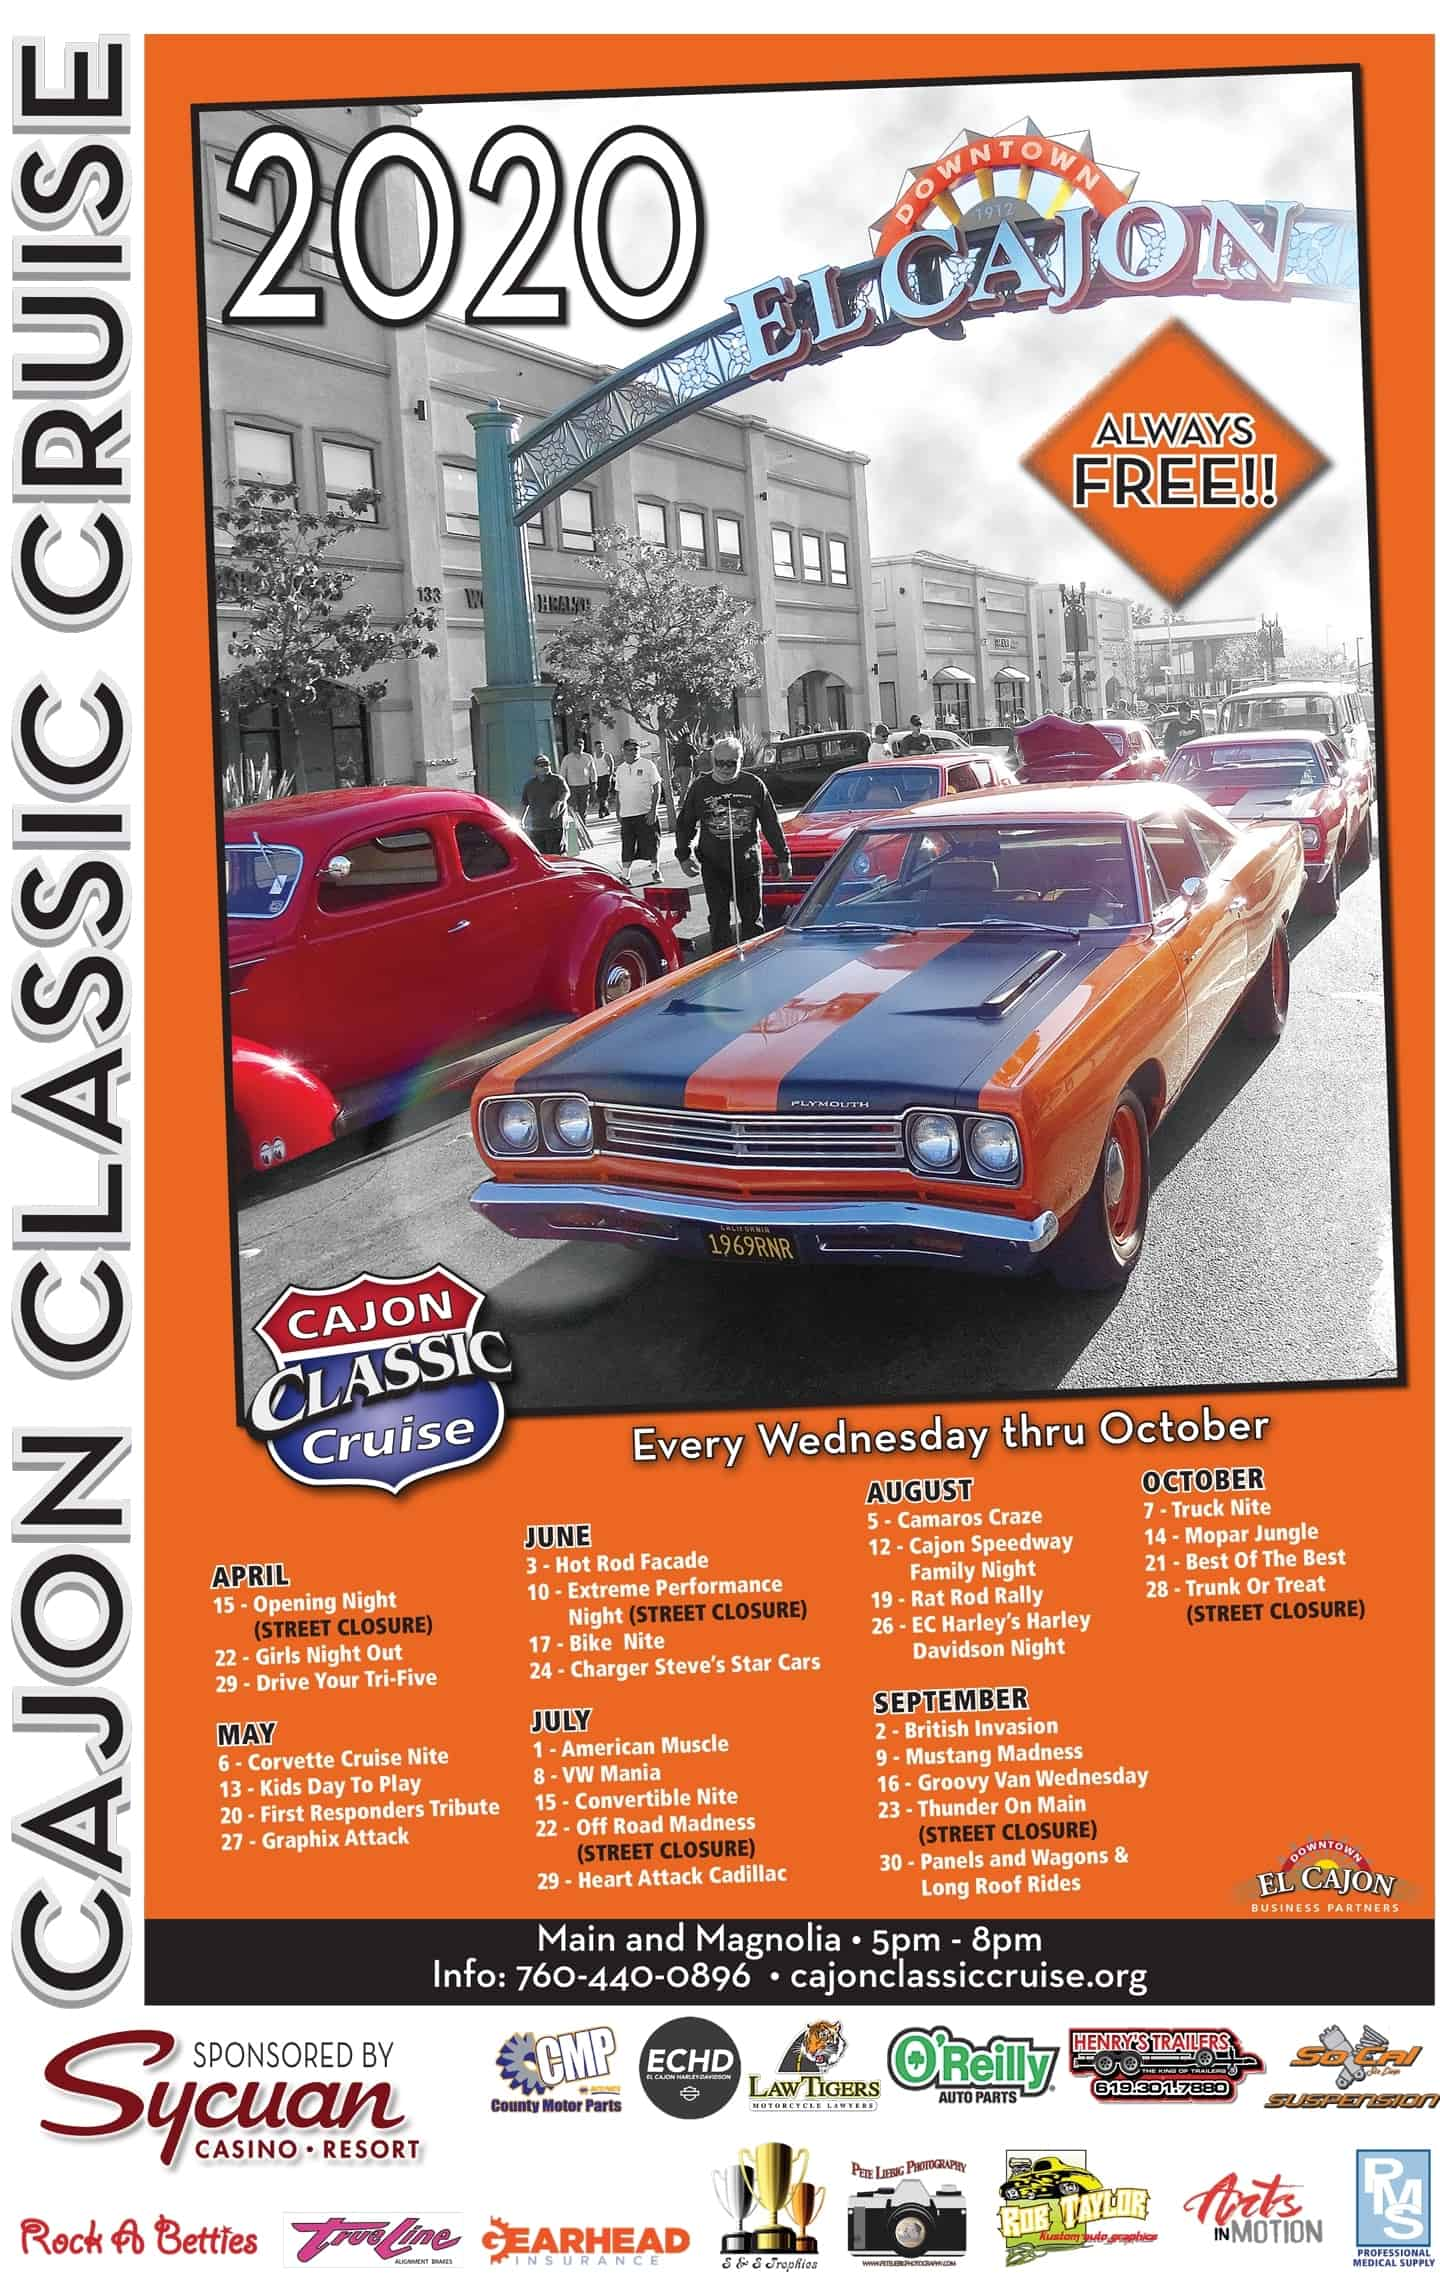 Opening Day Cajon Classic Cruise Car Shows April 15, 2020